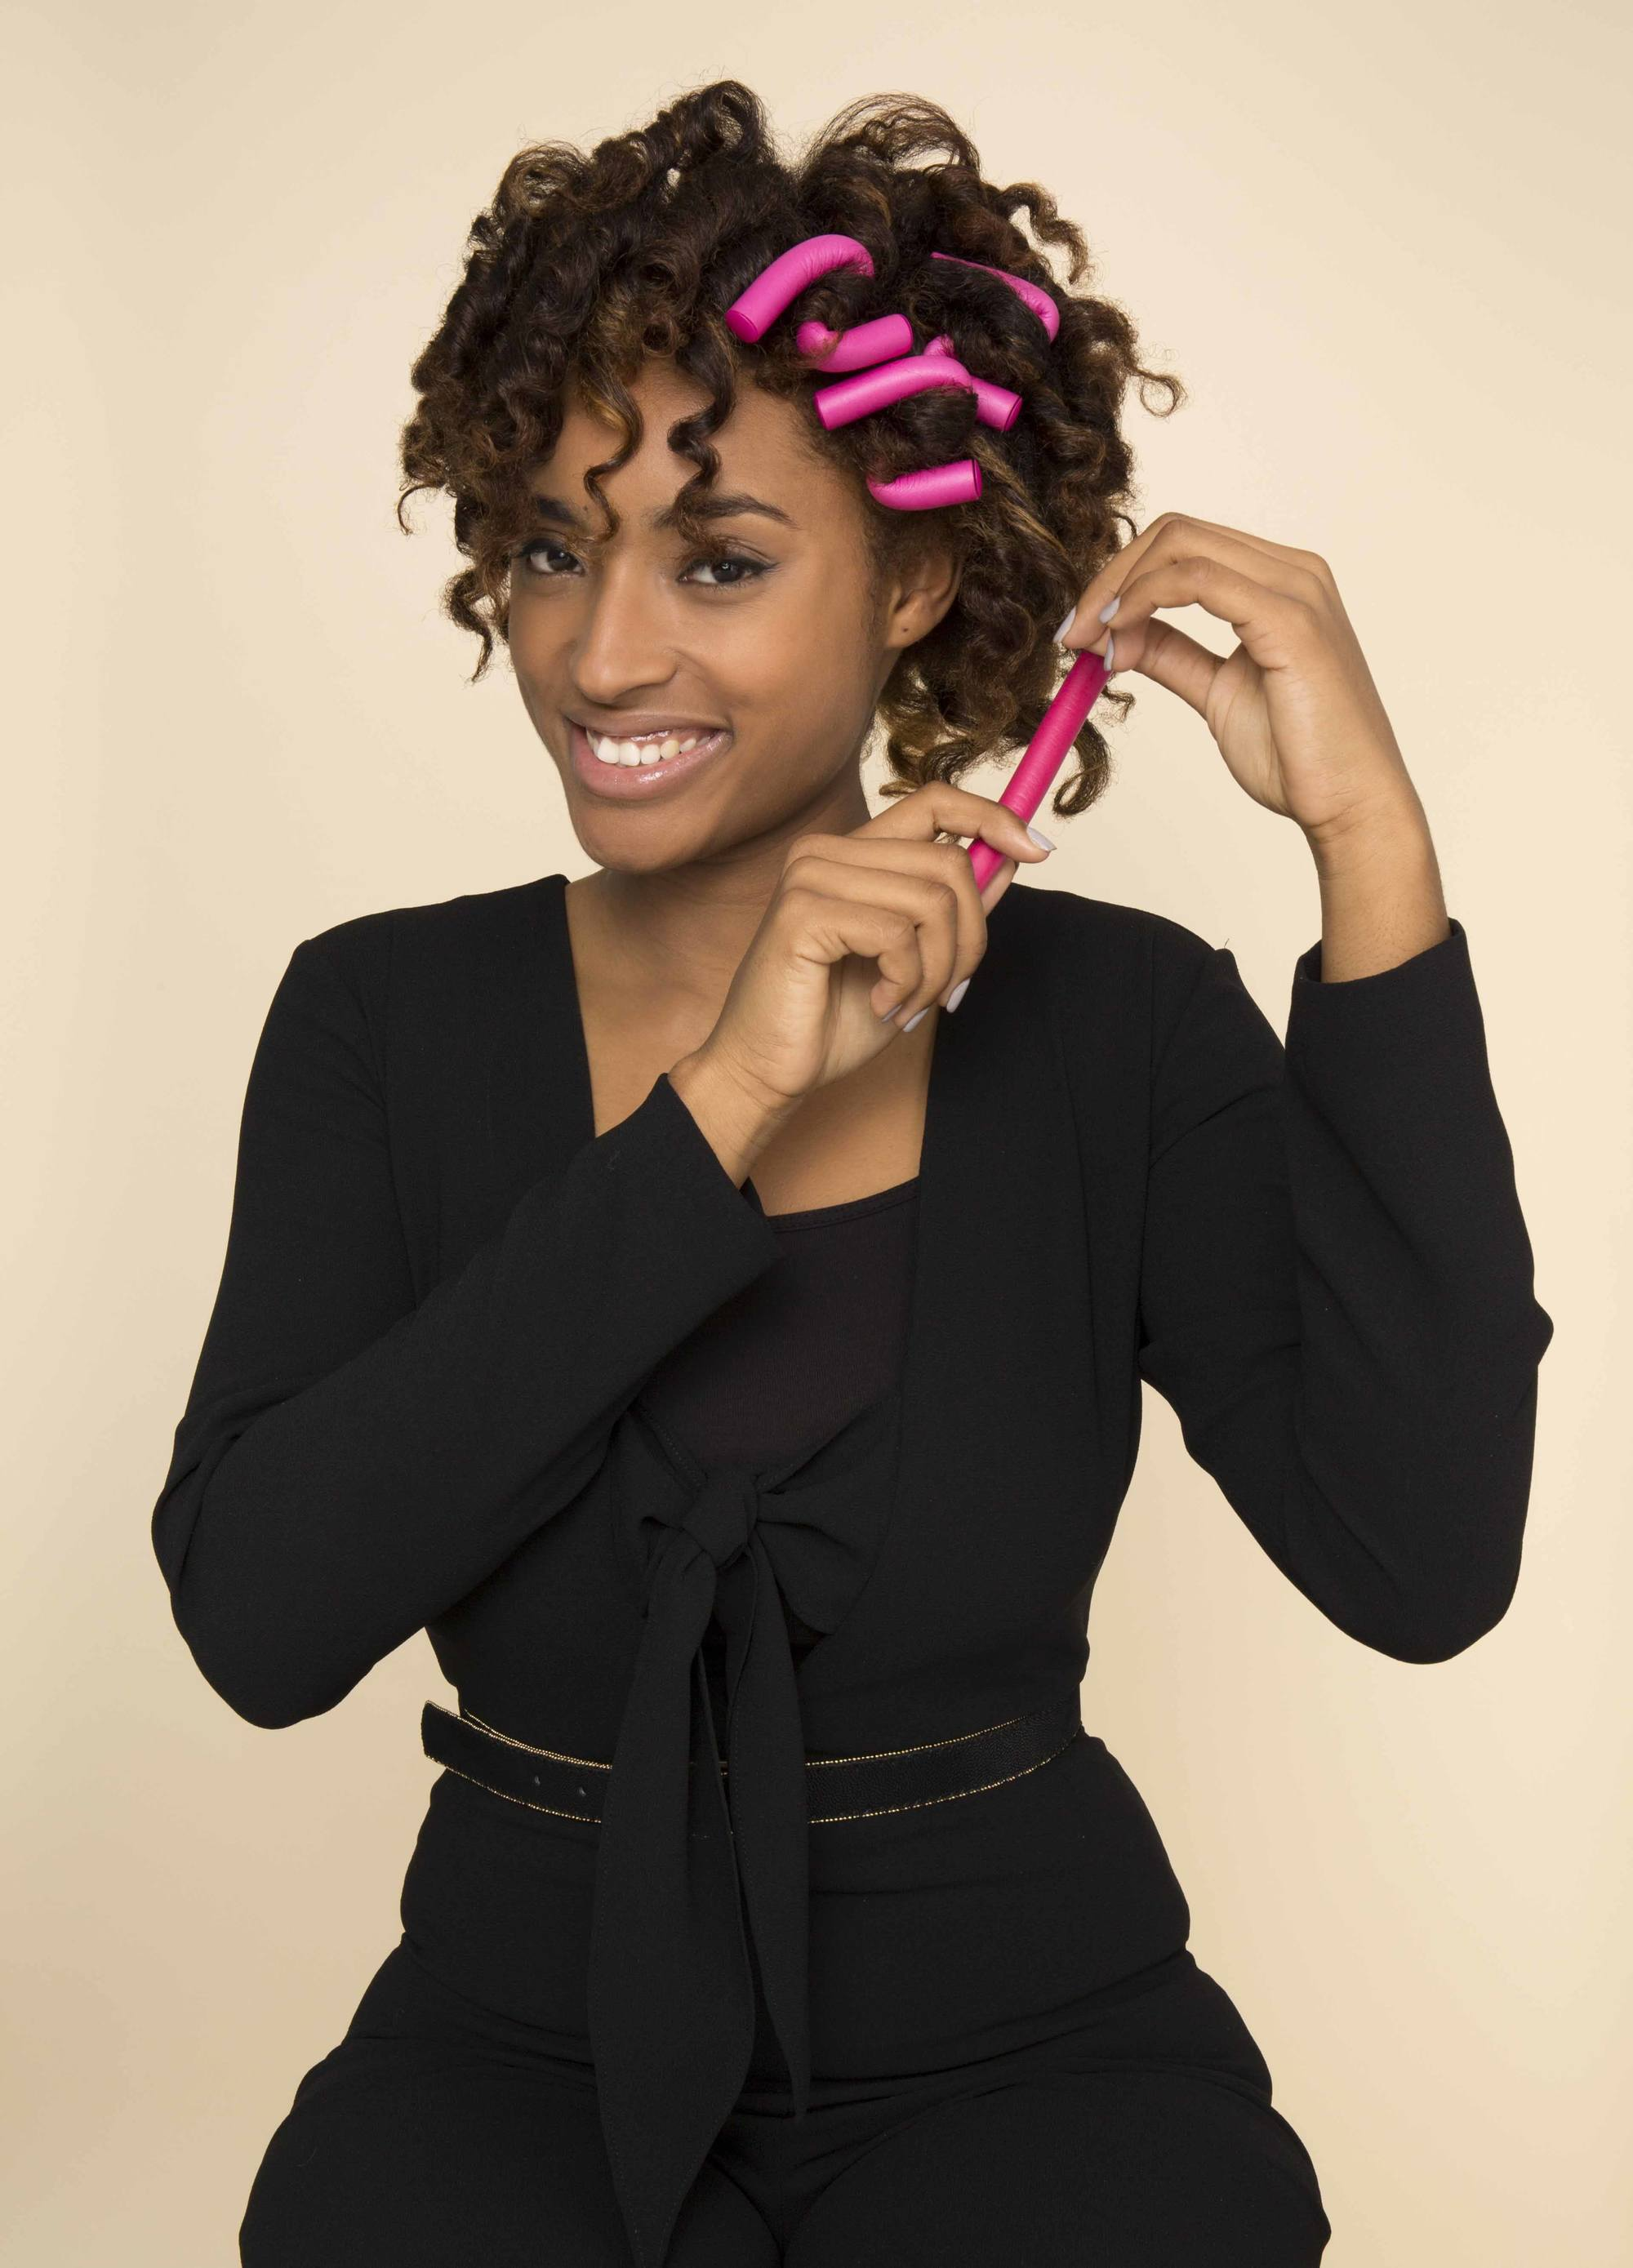 easy natural hairstyle flexi-rods